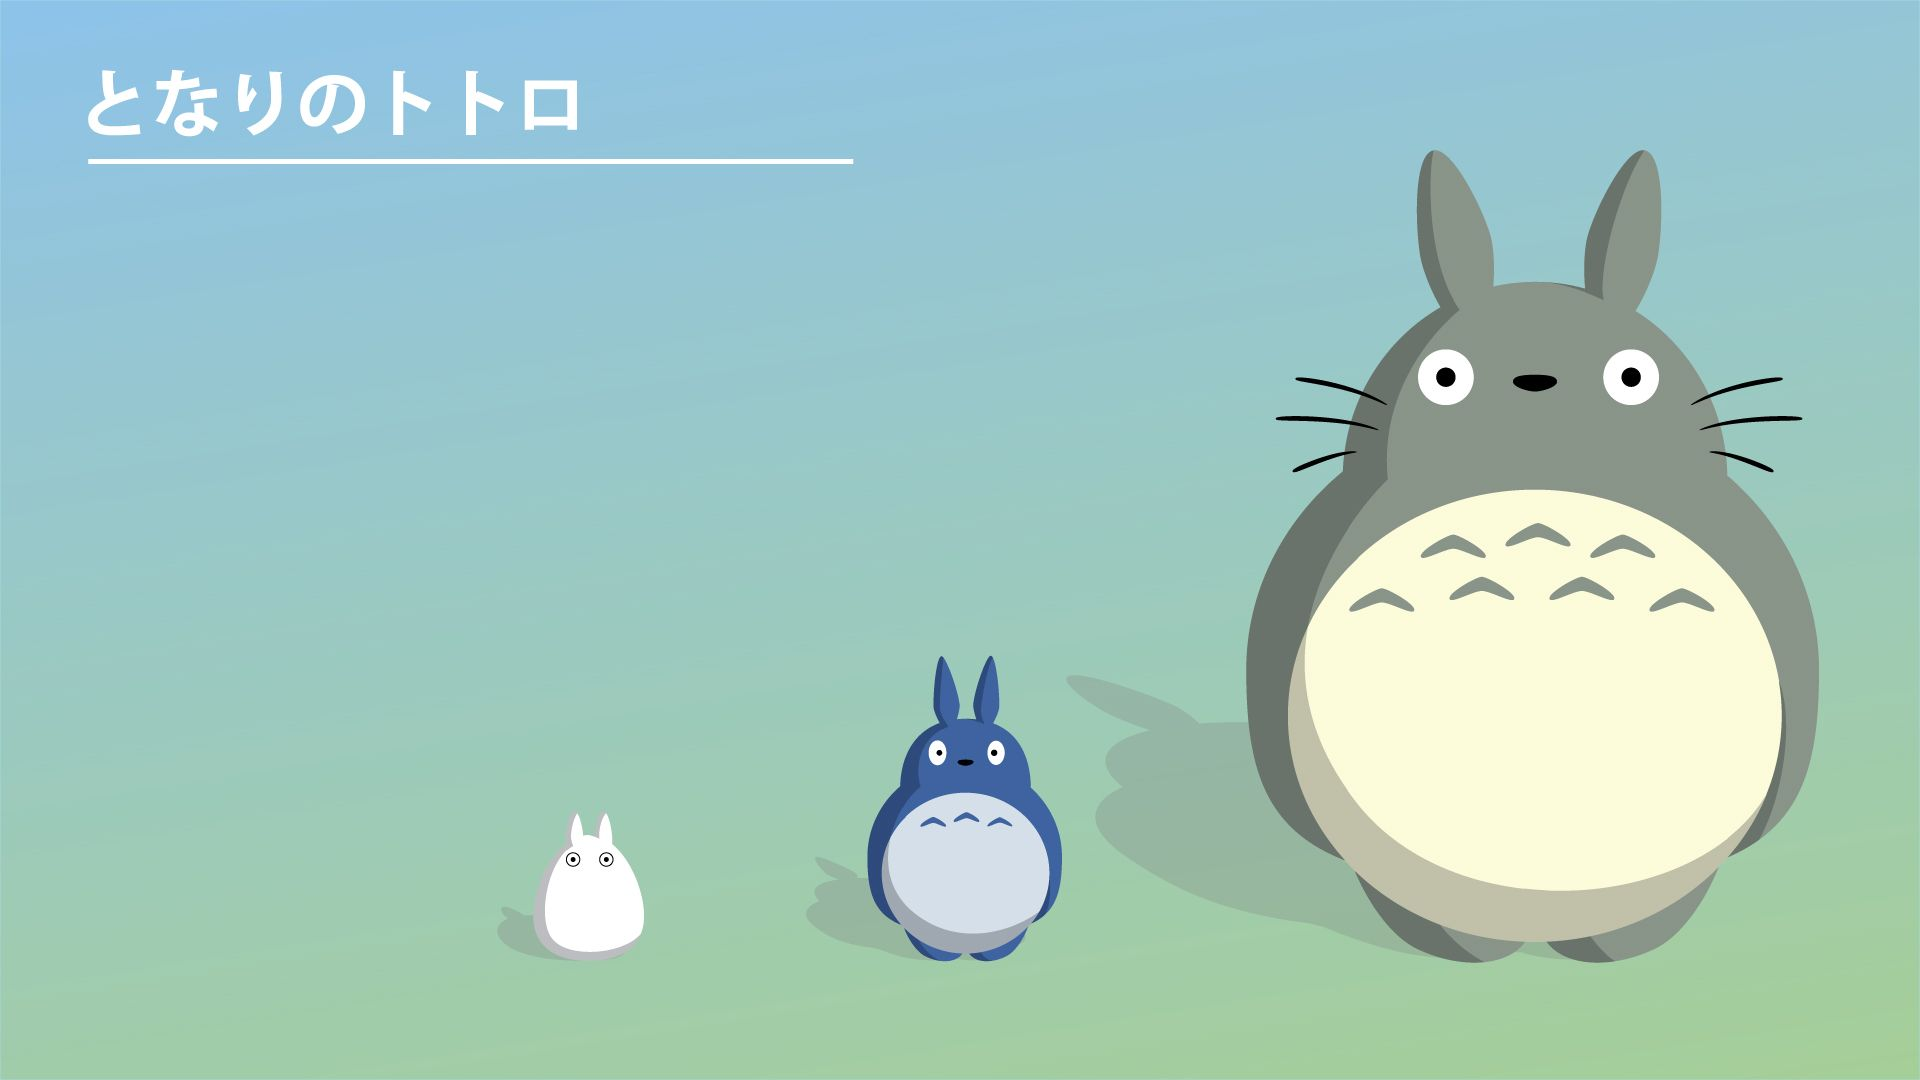 Totoro Minimalist Artwork Wallpapers - Wallpaper Cave